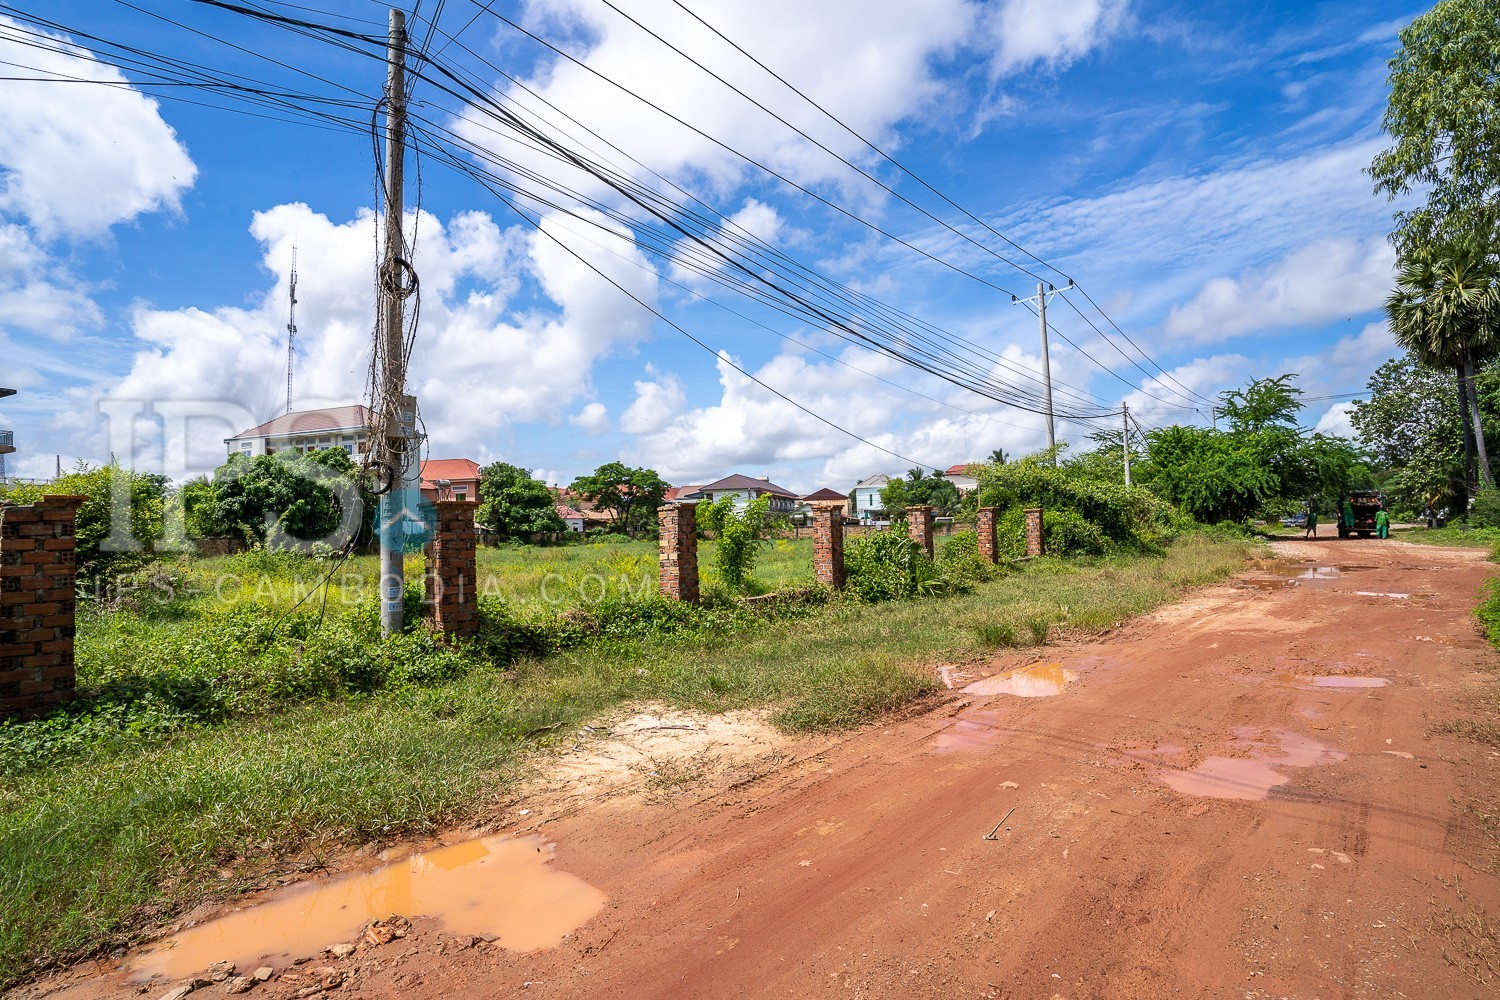 6000 Sqm Land For Sale - Svay Dangkum, Siem Reap